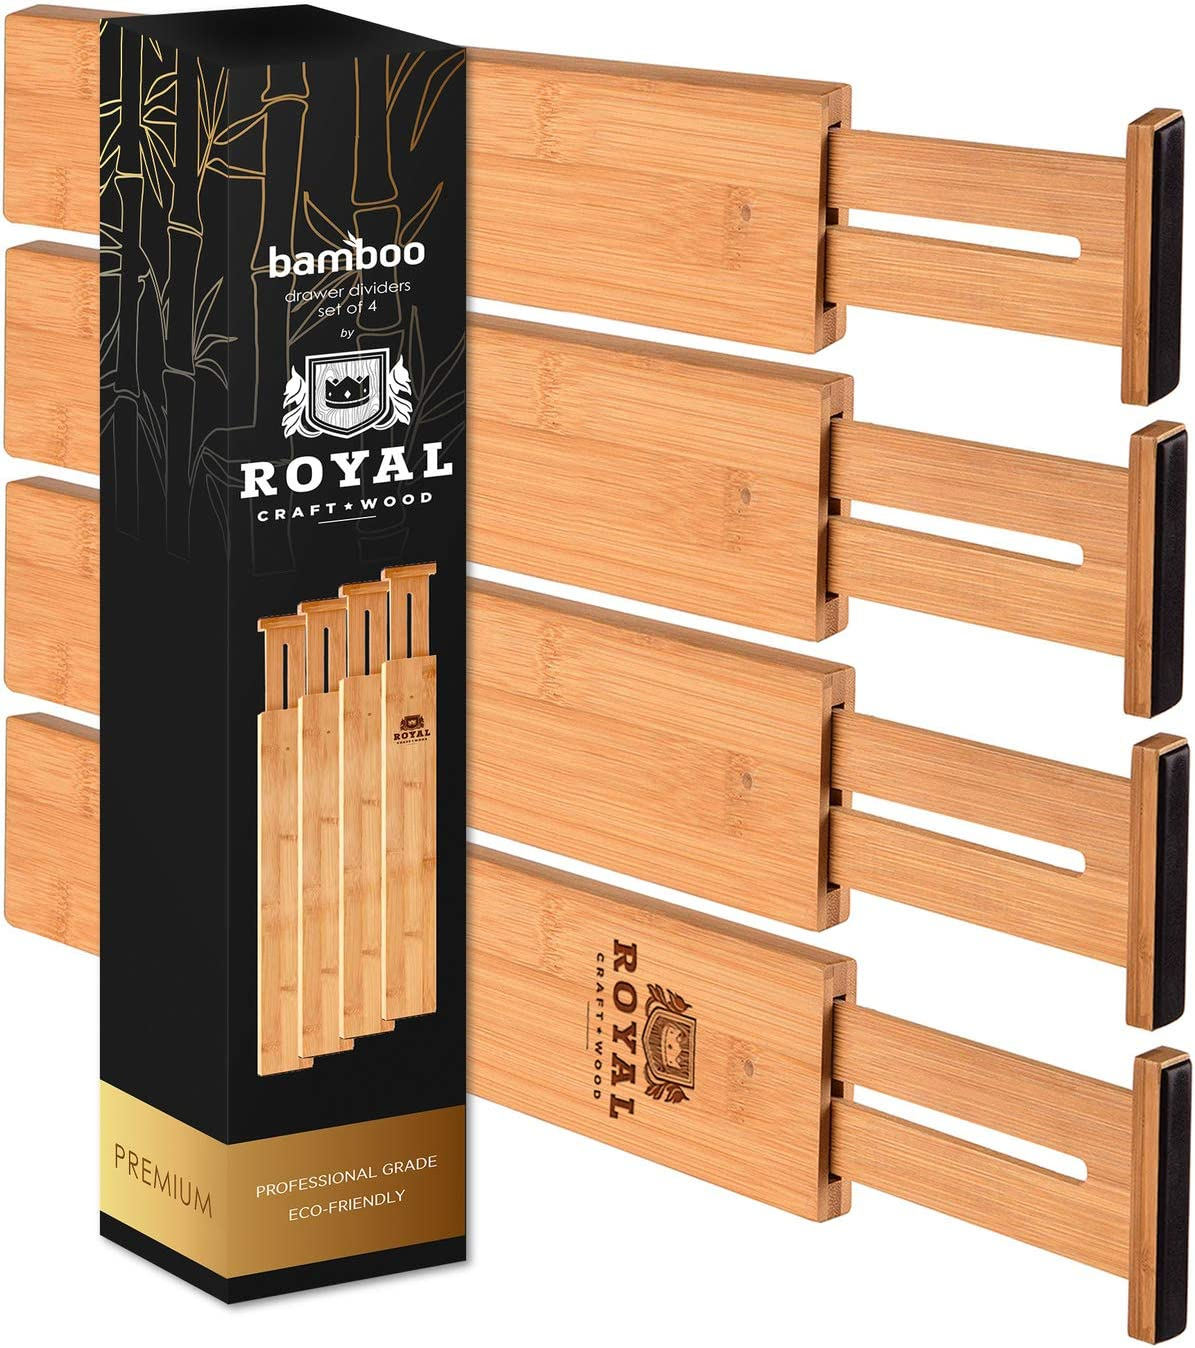 ROYAL CRAFT WOOD Adjustable Bamboo Drawer Dividers Organizers - Expandable Drawer Organization Separators for Kitchen, Dresser, Bedroom, Bathroom and Office, 4-Pack, 13.25-17.25 in